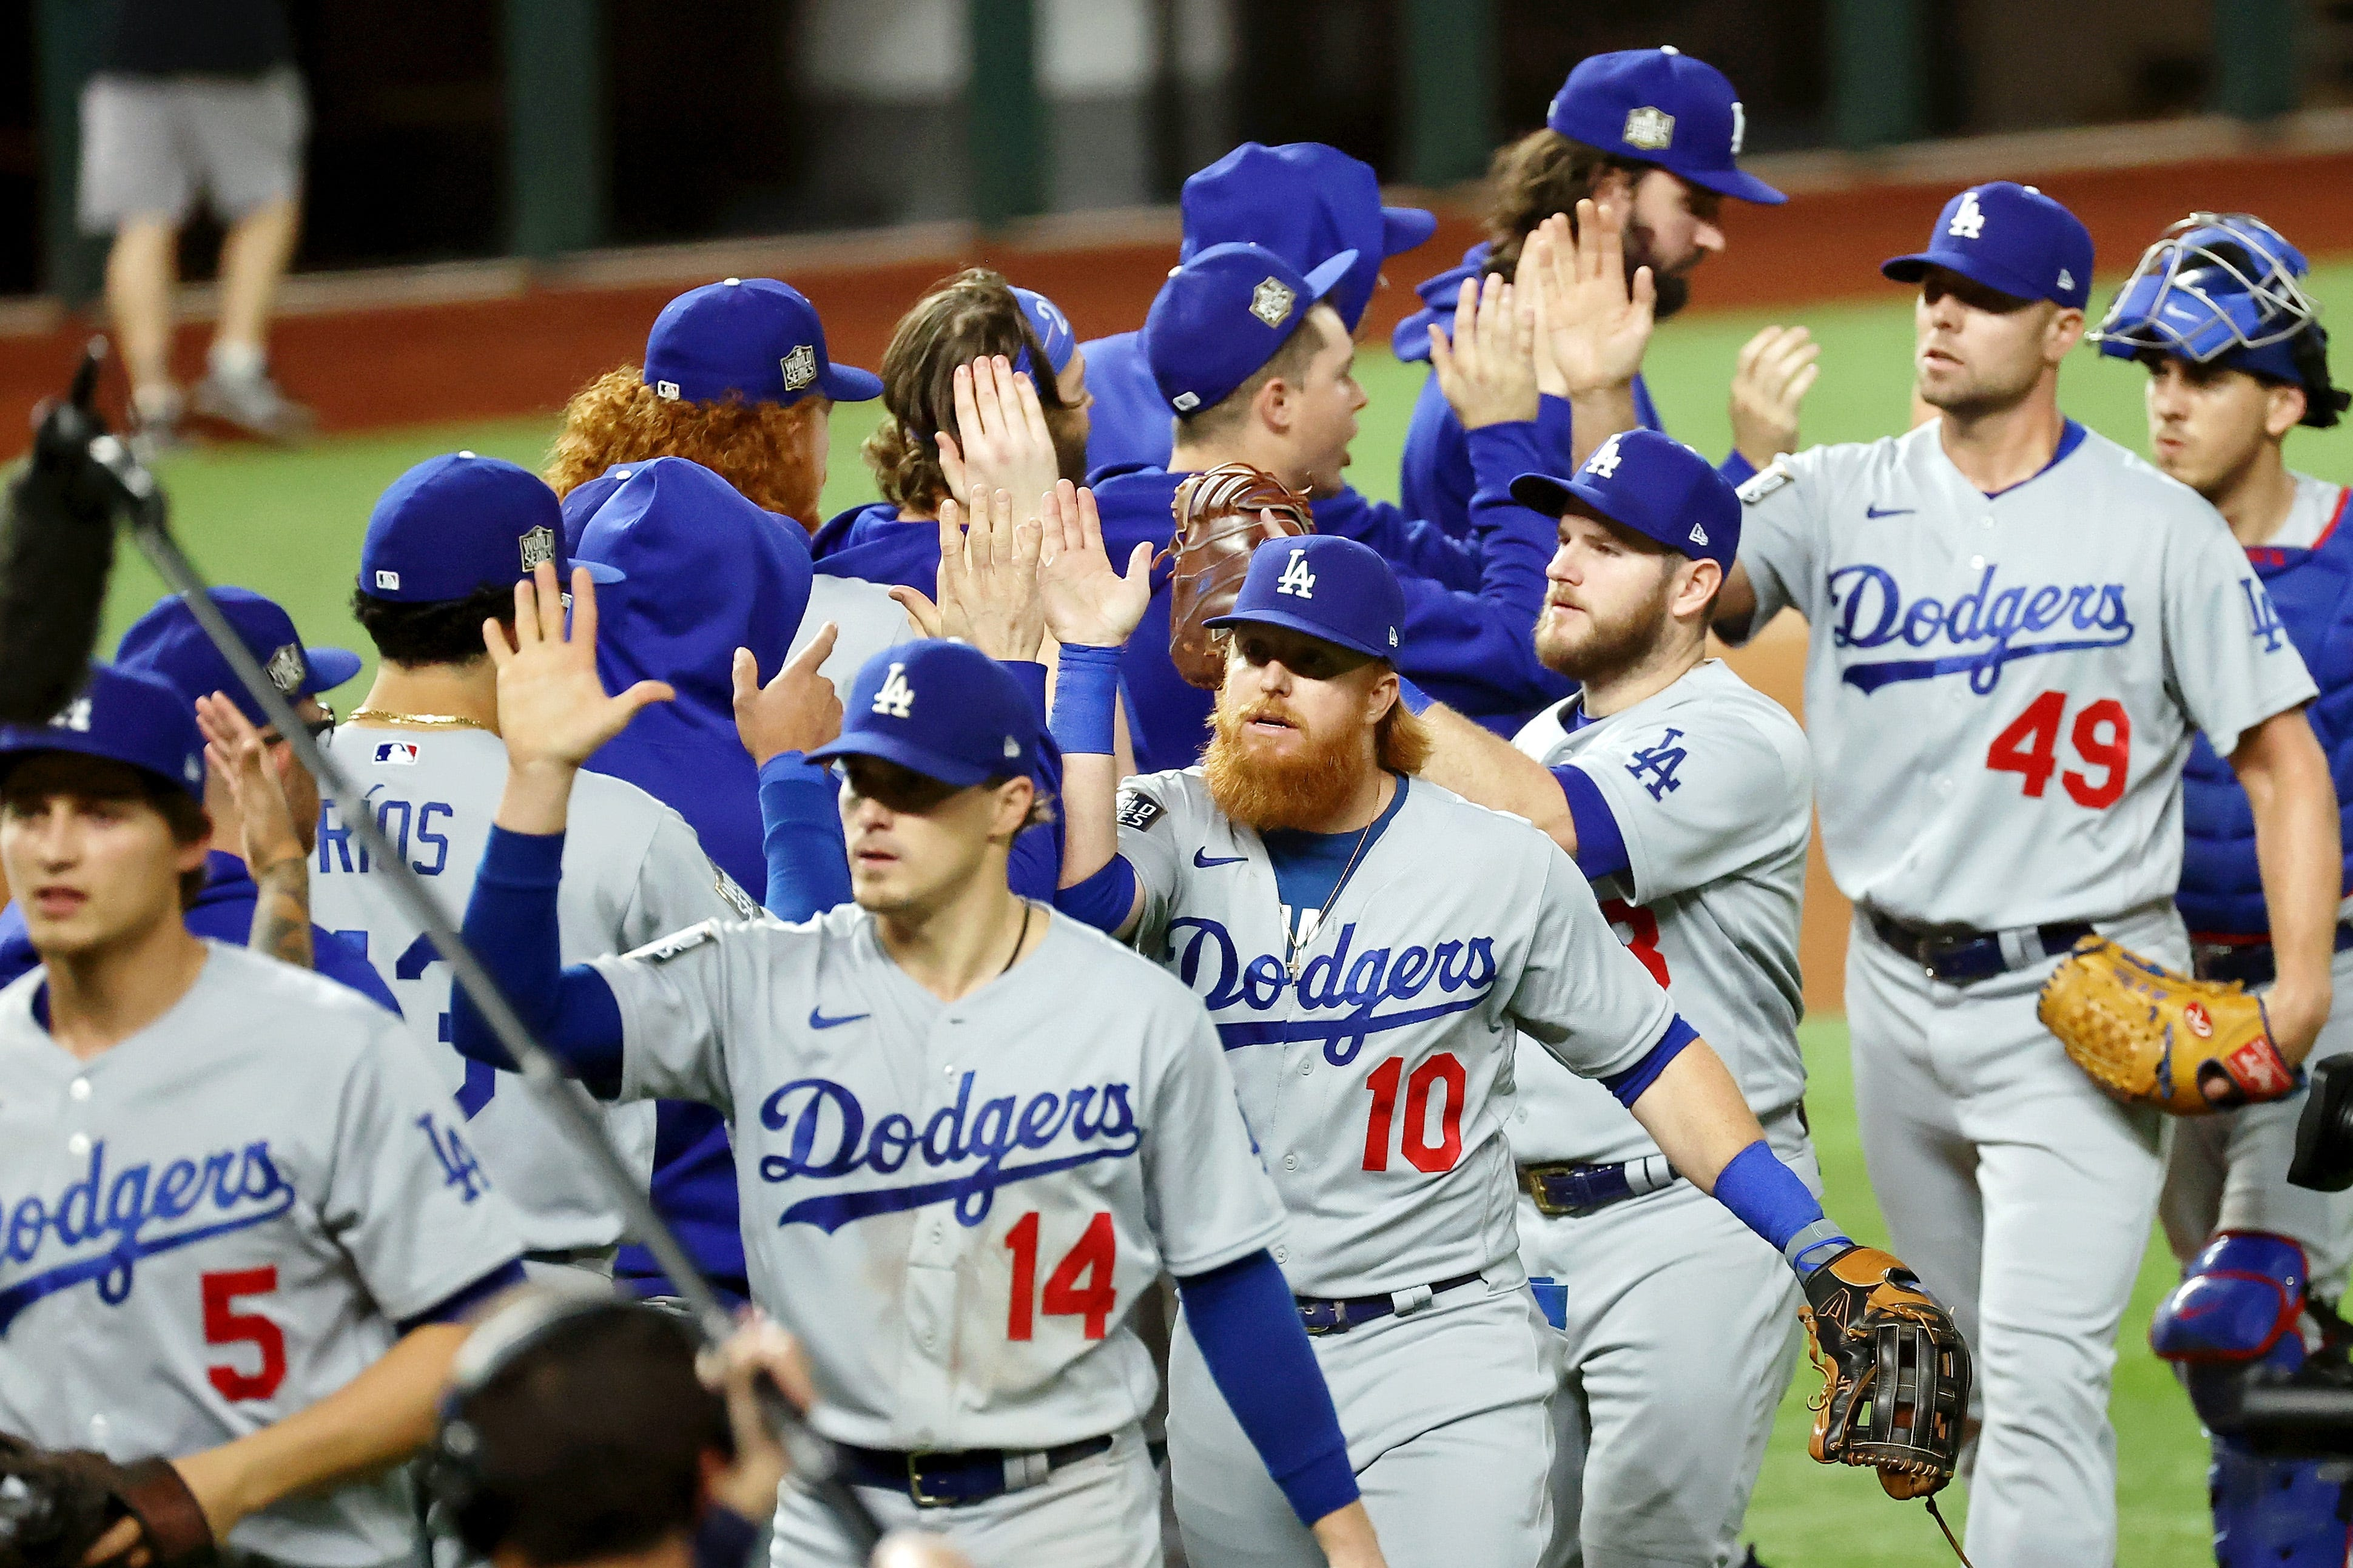 Vin Scully eager for Dodgers World Series win: 'What's taking them so long?'